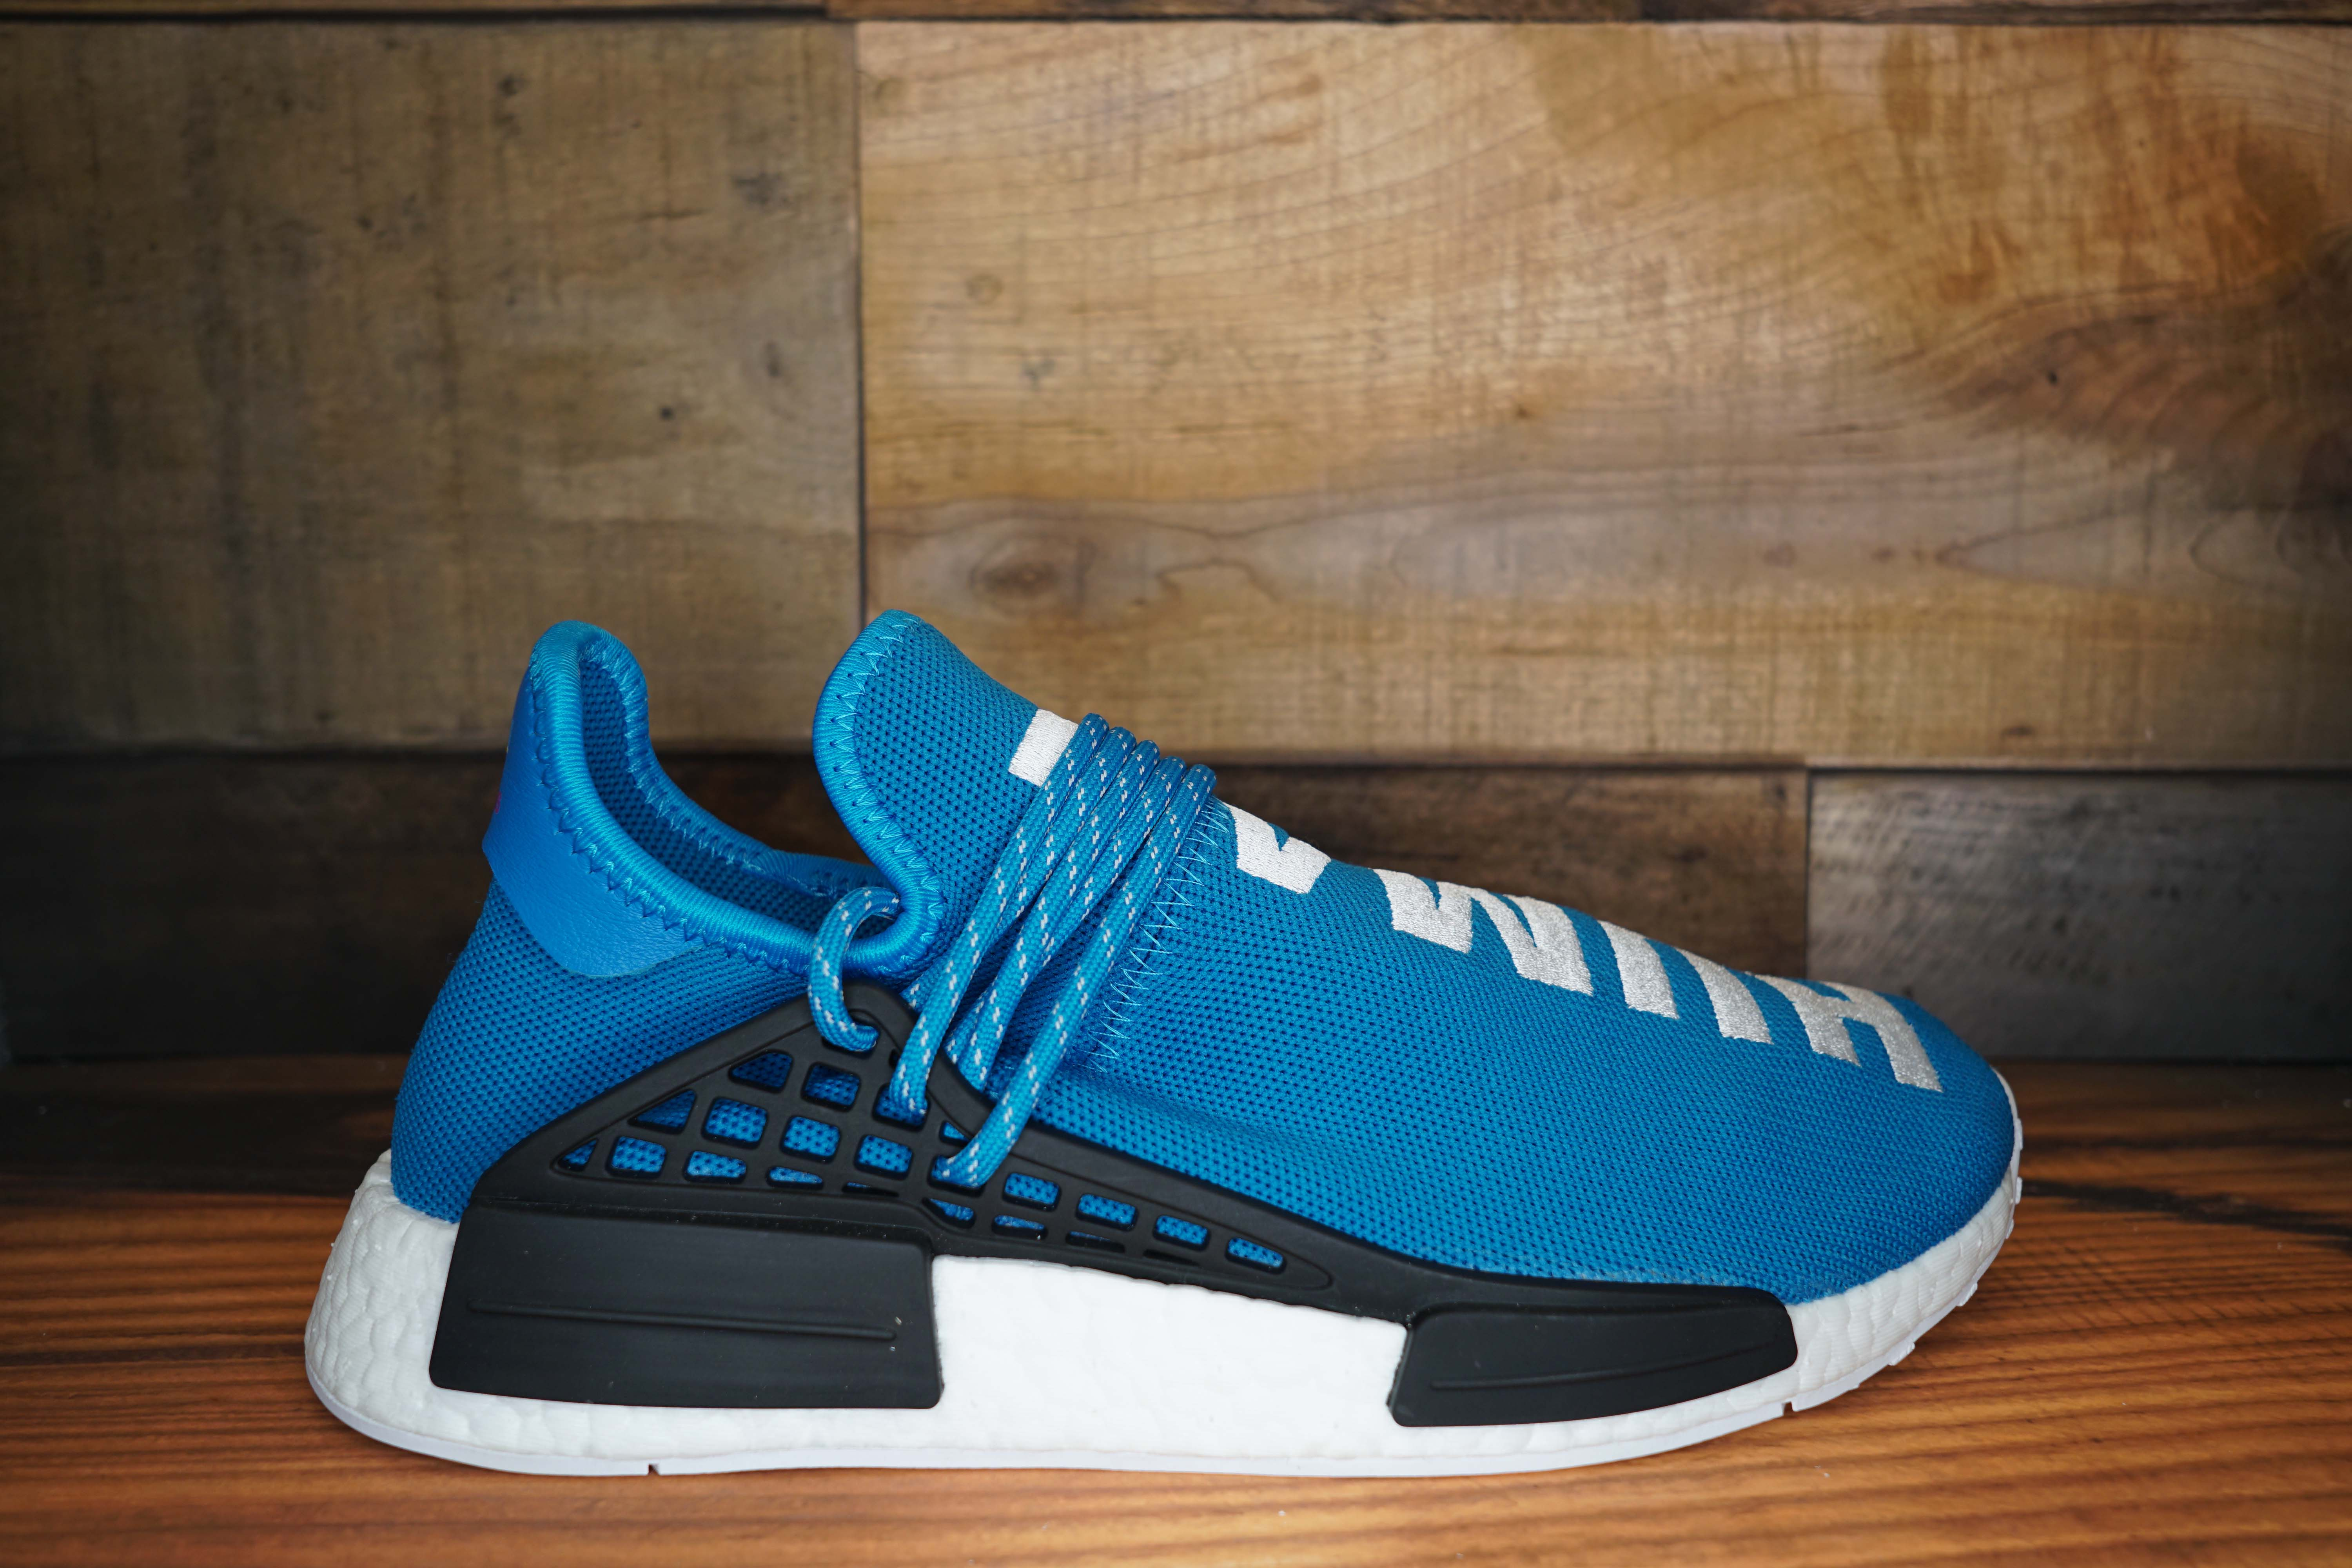 7d4660ca4f59c adidas nmd size 10 Adidas PW Human Race ...